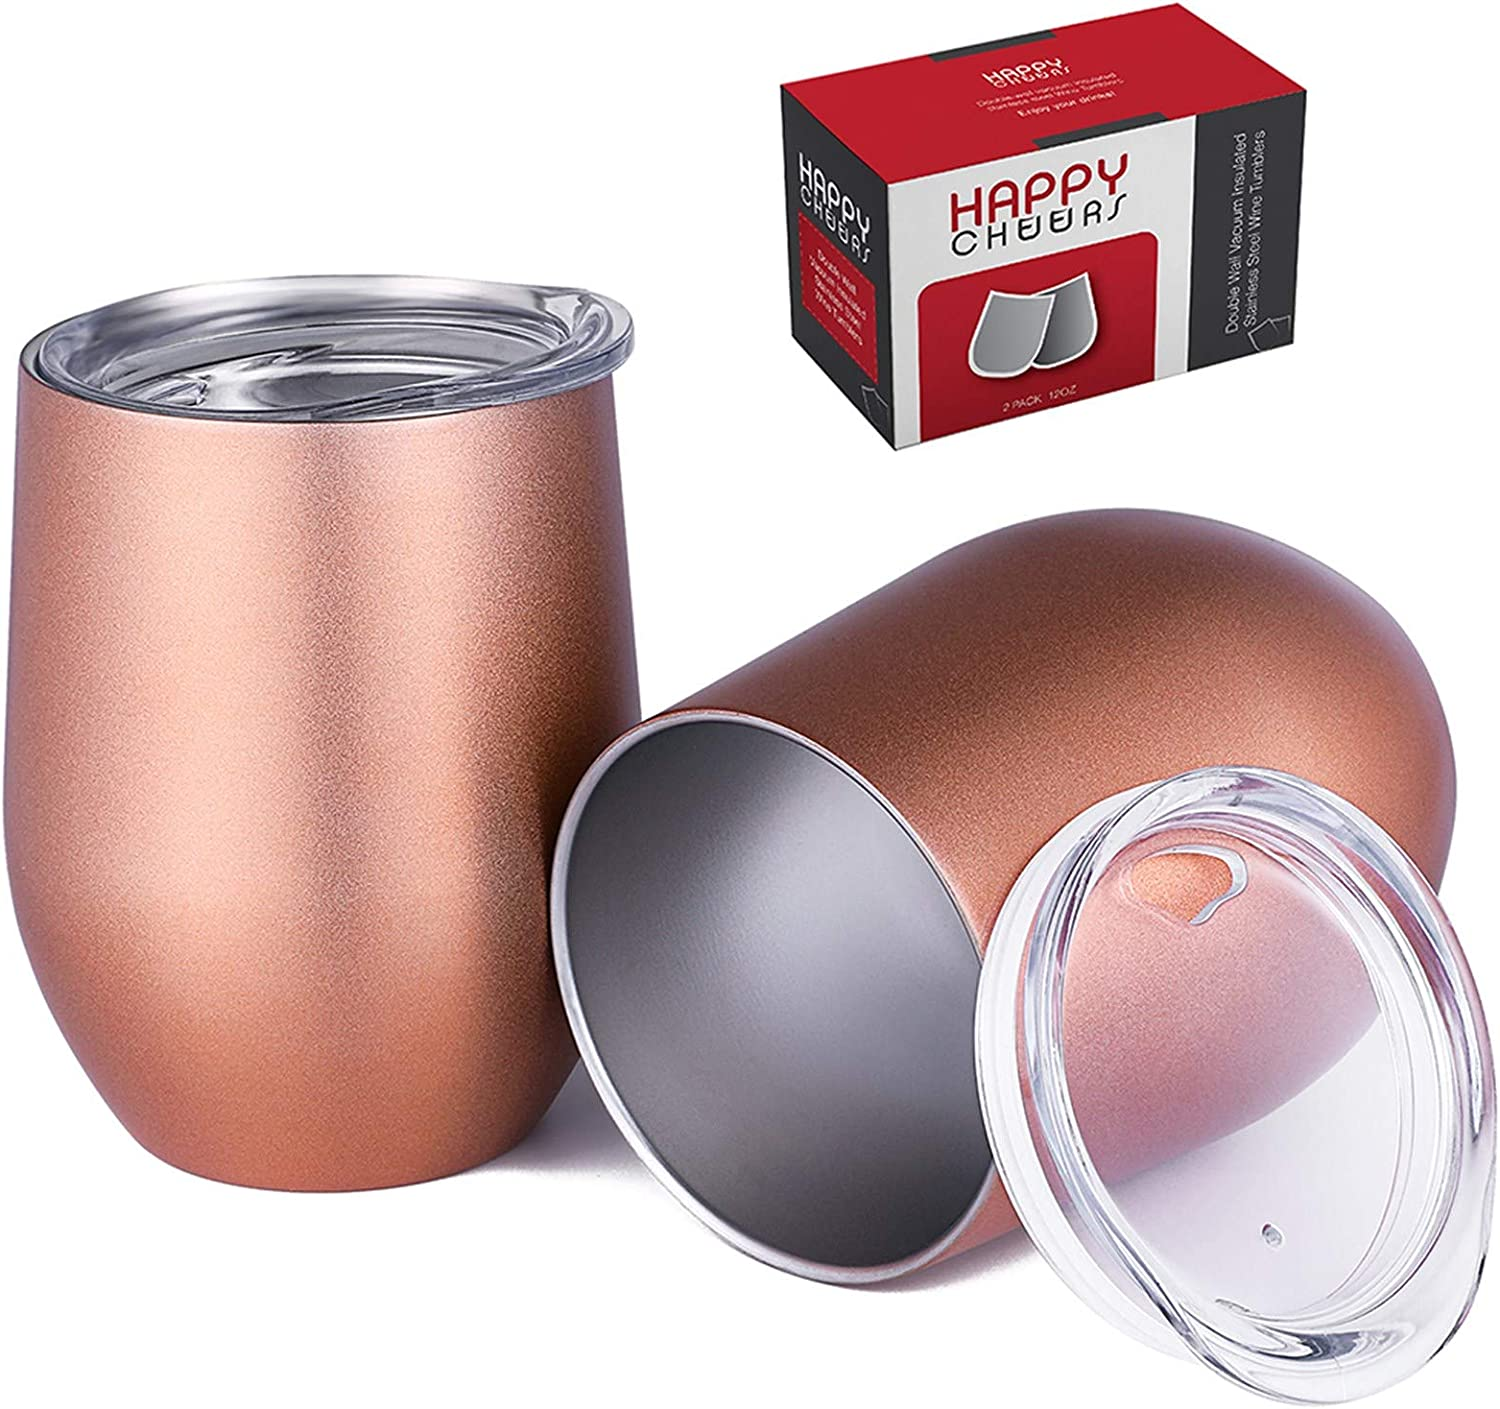 Happycheers Insulated Wine Tumbler Cup with Lid and Straw, Stainless Steel 12 Oz Tumblers Set, Portable Metal Wine Mug of 2 Pack for Coffee Drink Cocktail Outdoor Travel, with Box, Rose Gold